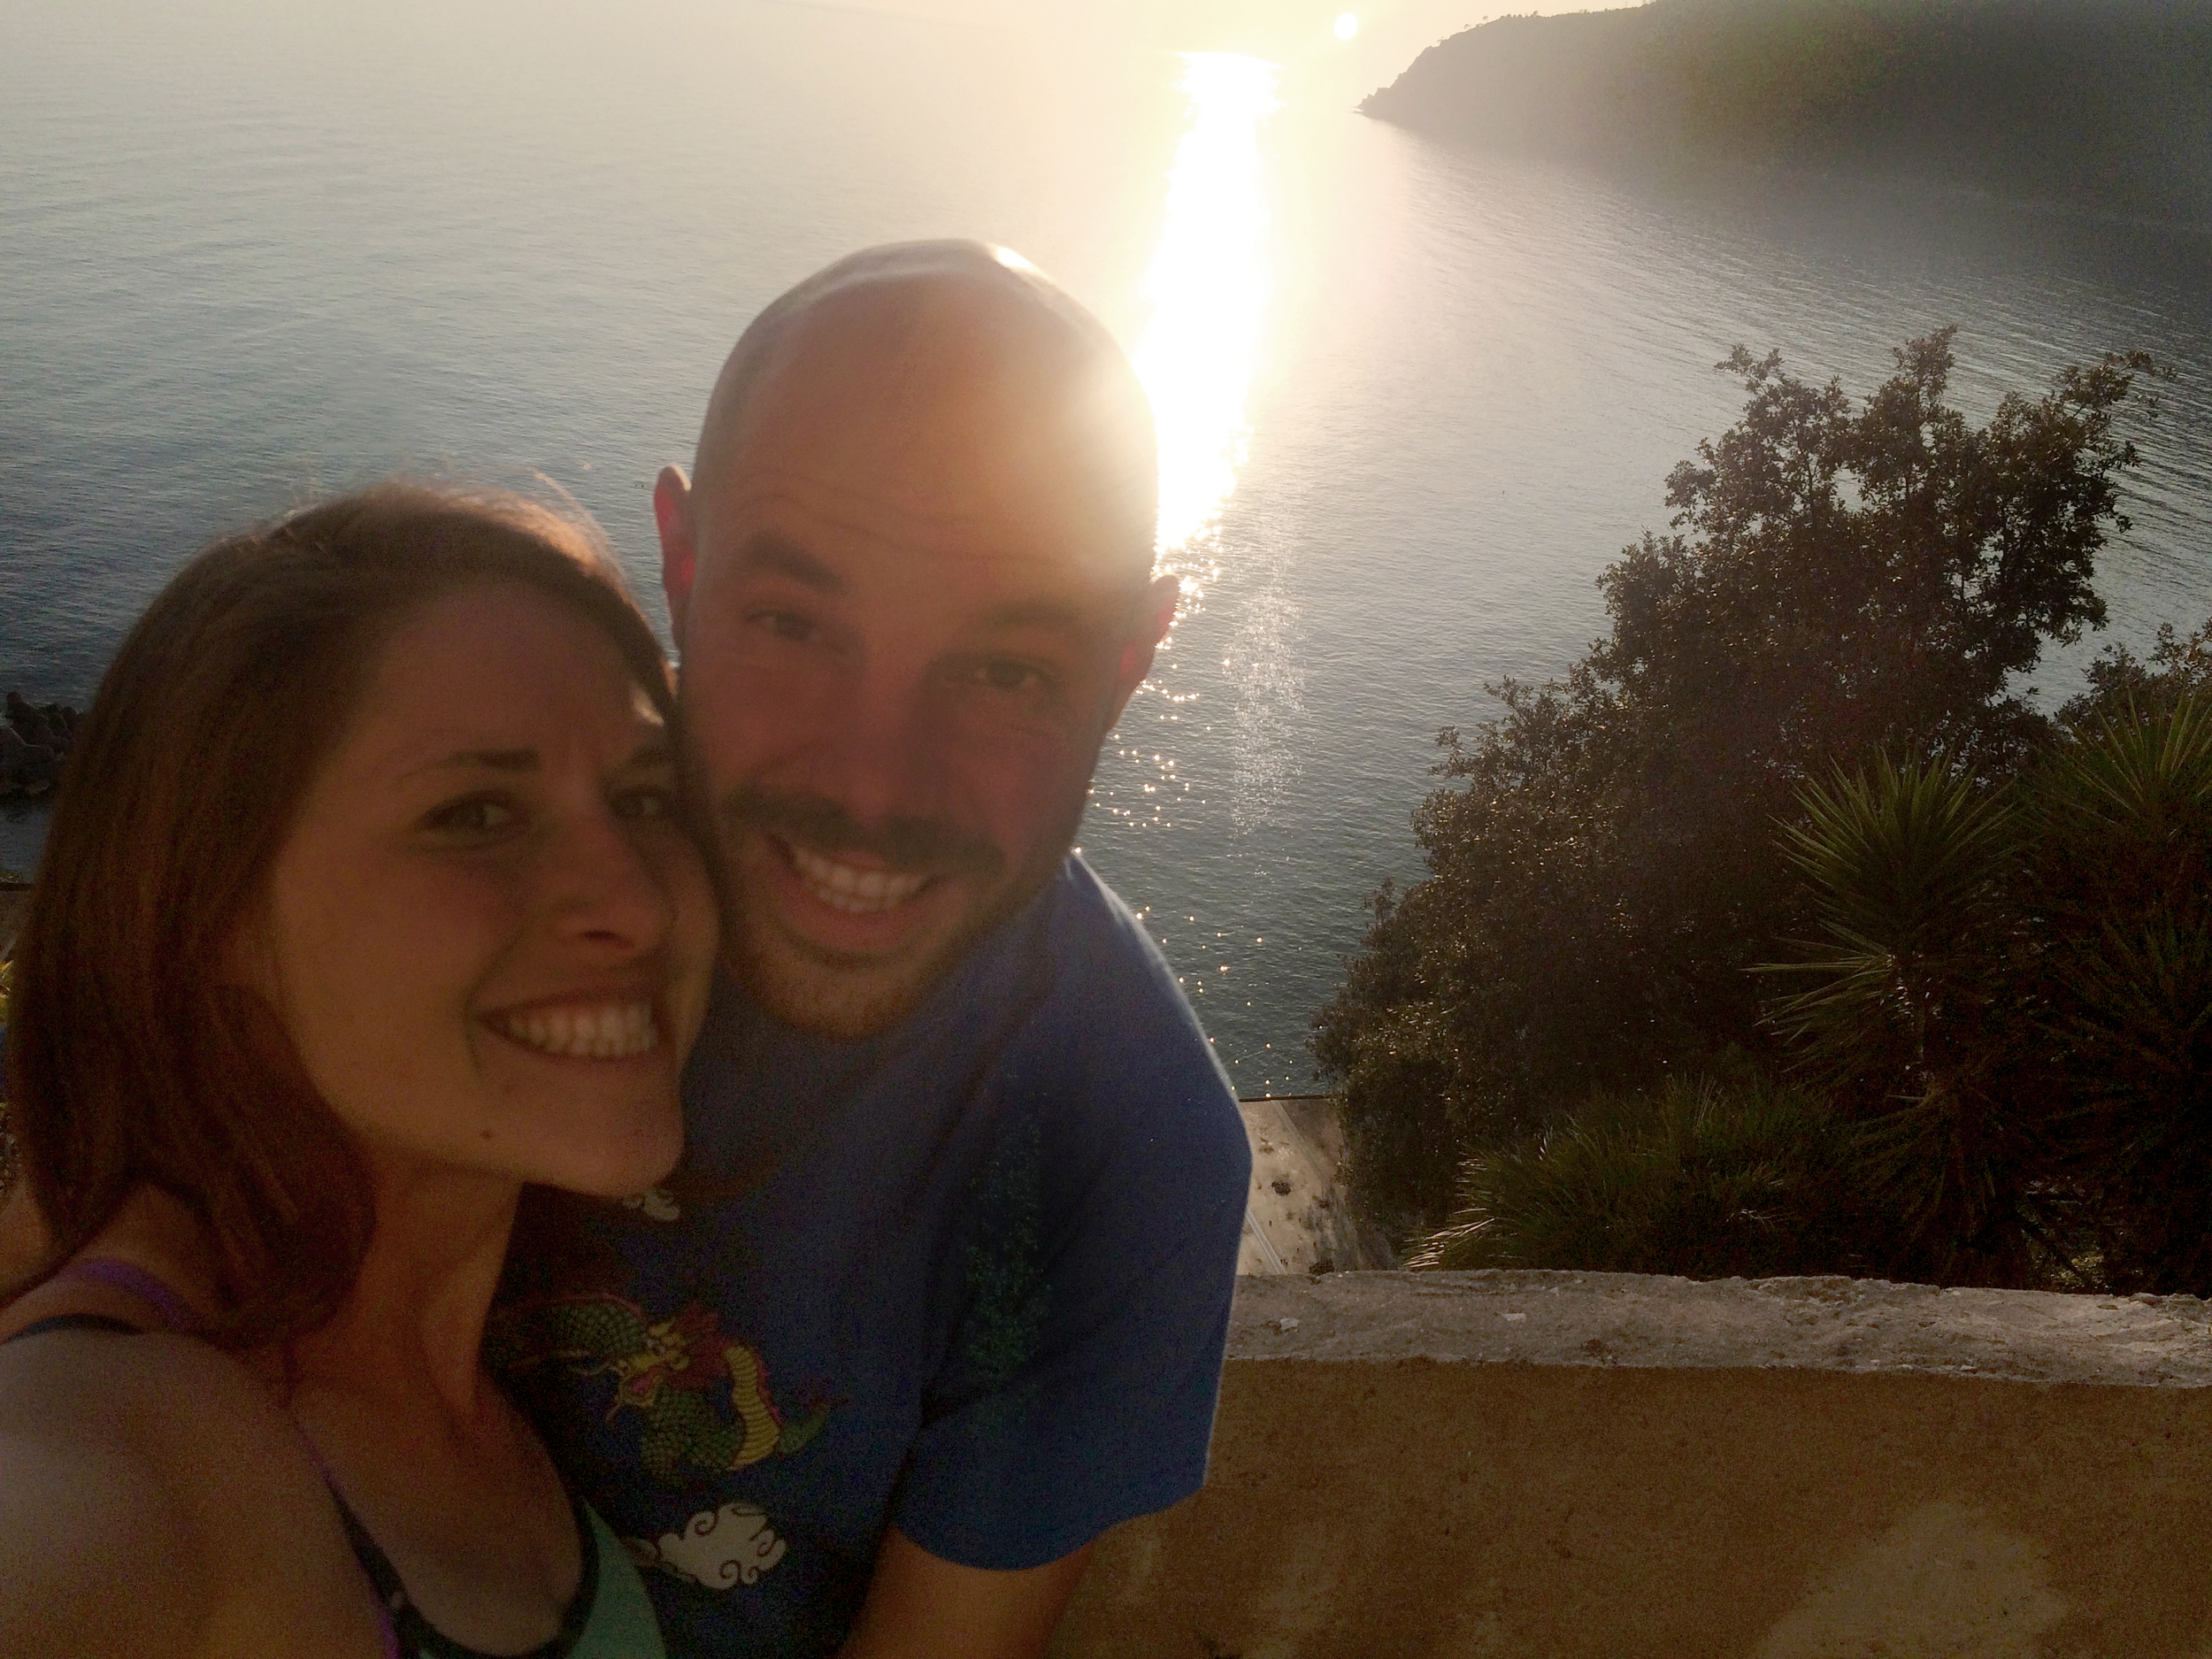 Enjoying the sunset above Moneglia.